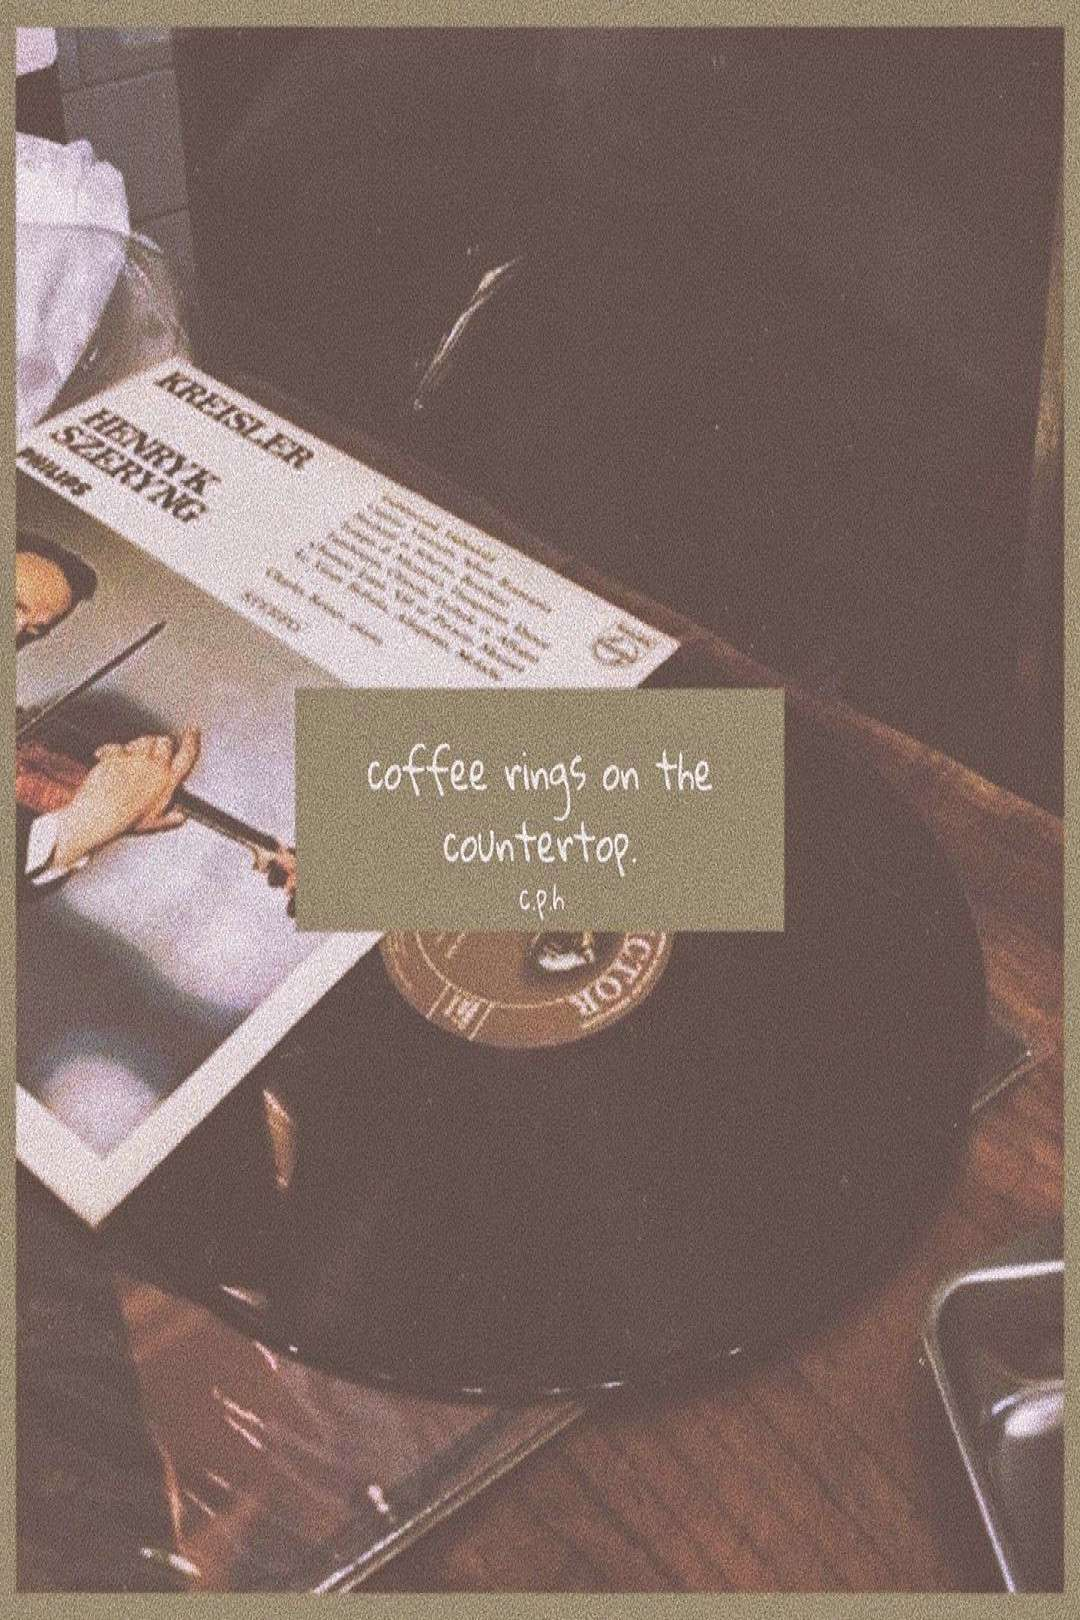 ❝ COFFEE RINGS ON THE COUNTERTOP ❞ a poem. * * * * * * * * *